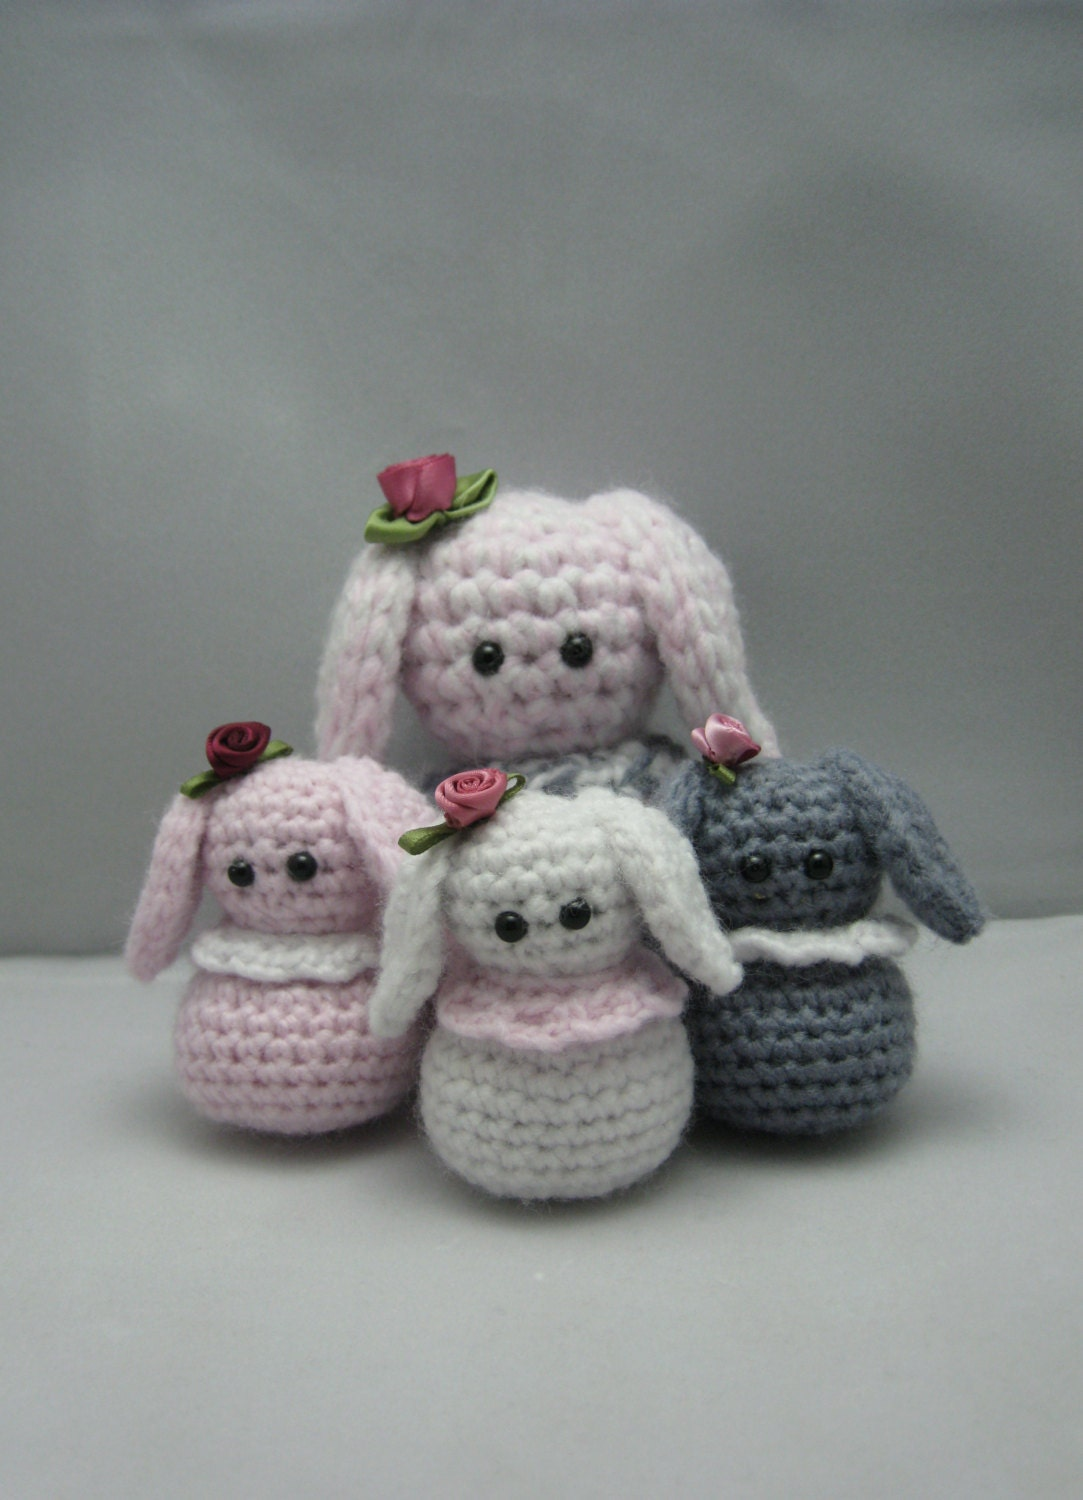 Little Bunnys FREE Amigurumi crochet pattern by NenneDesign